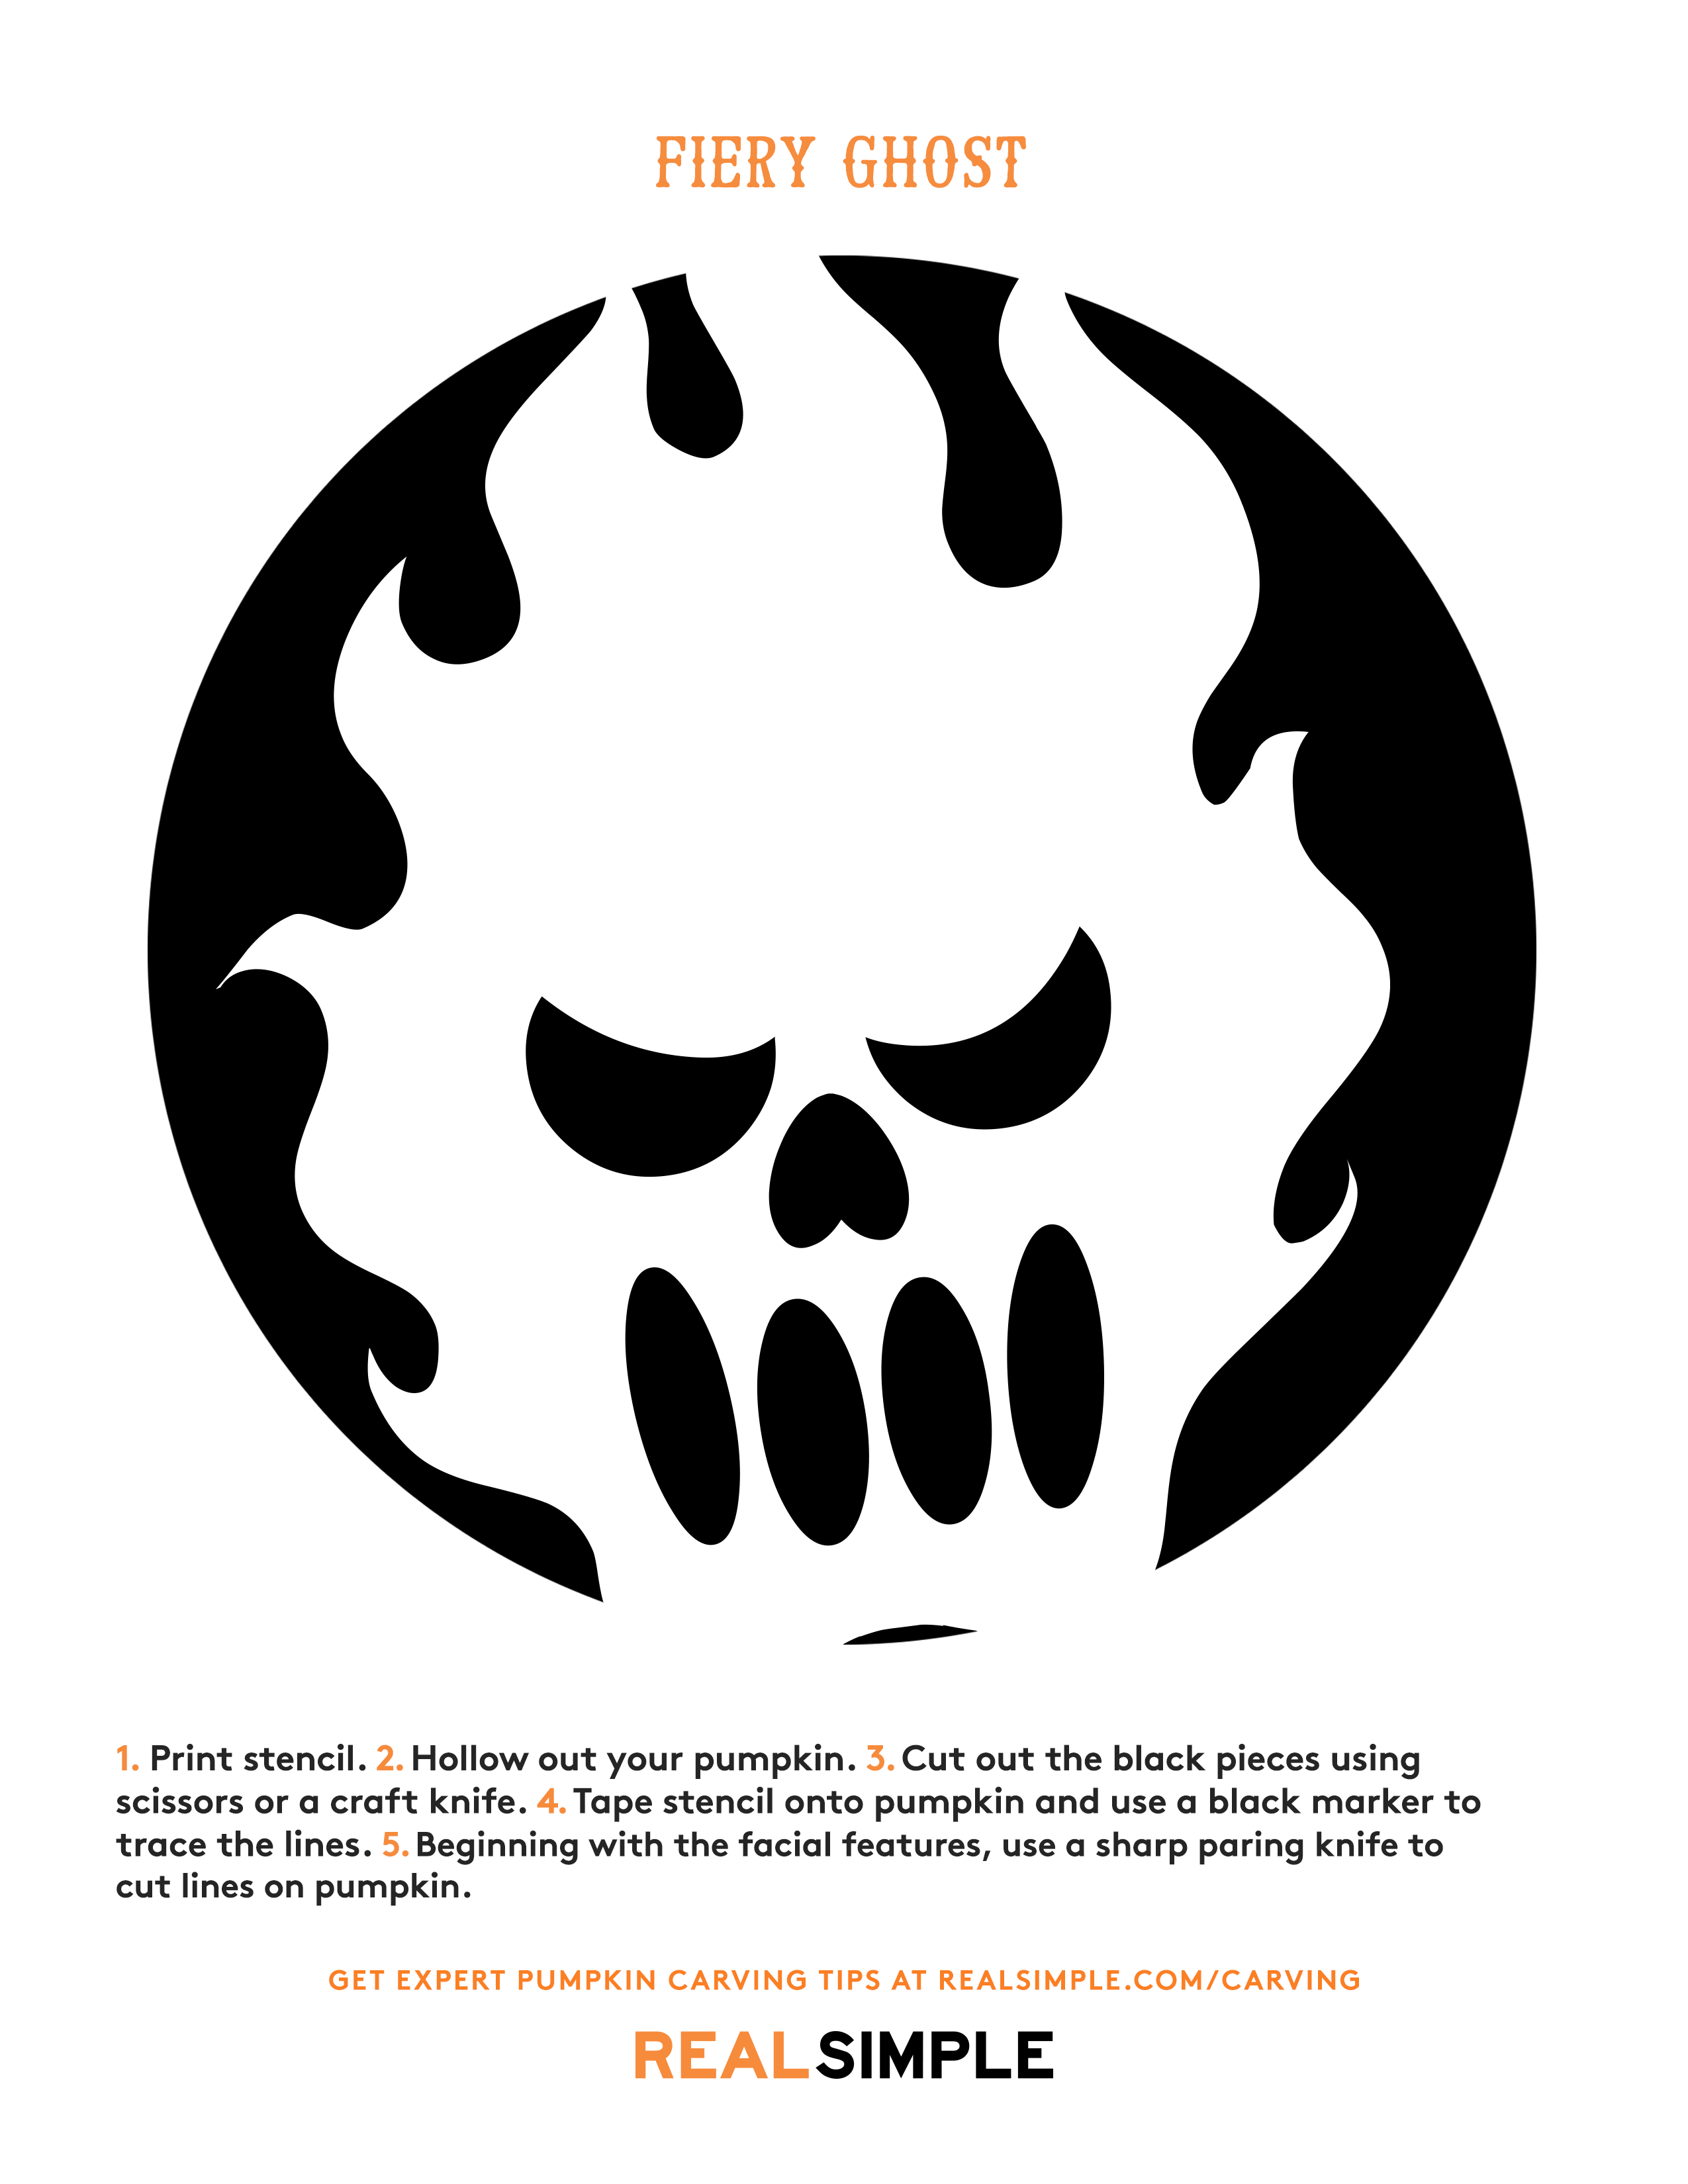 Pumpkin carving stencil - fiery ghost template print-out